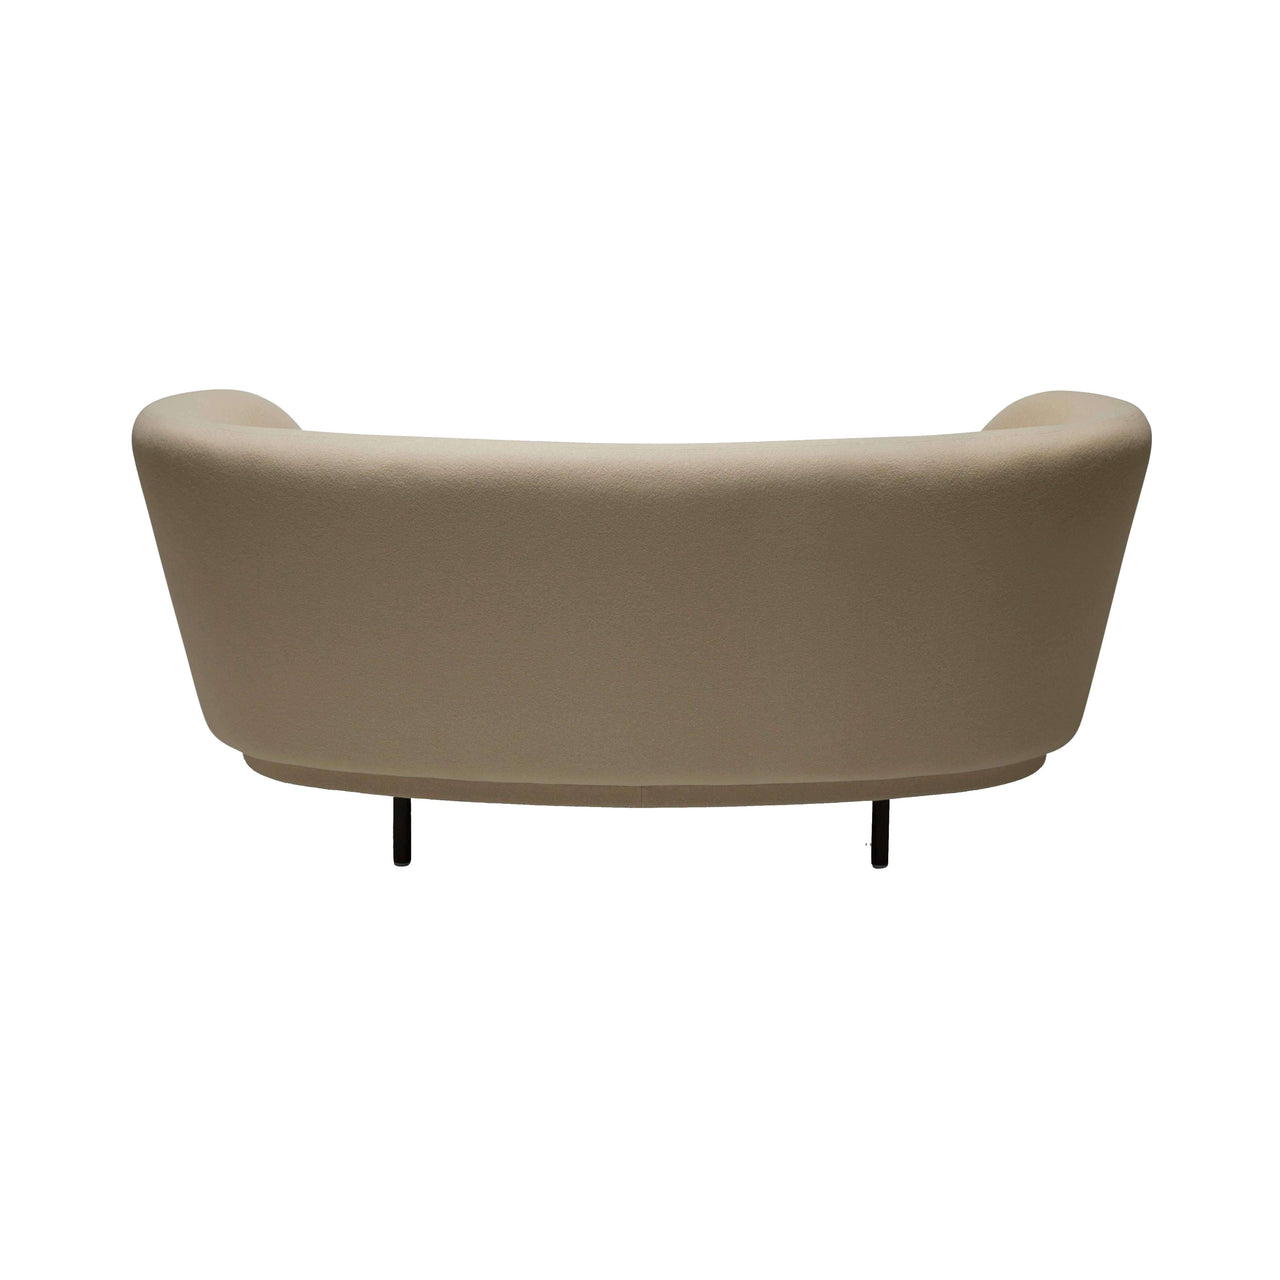 Dandy 2 Seater Sofa